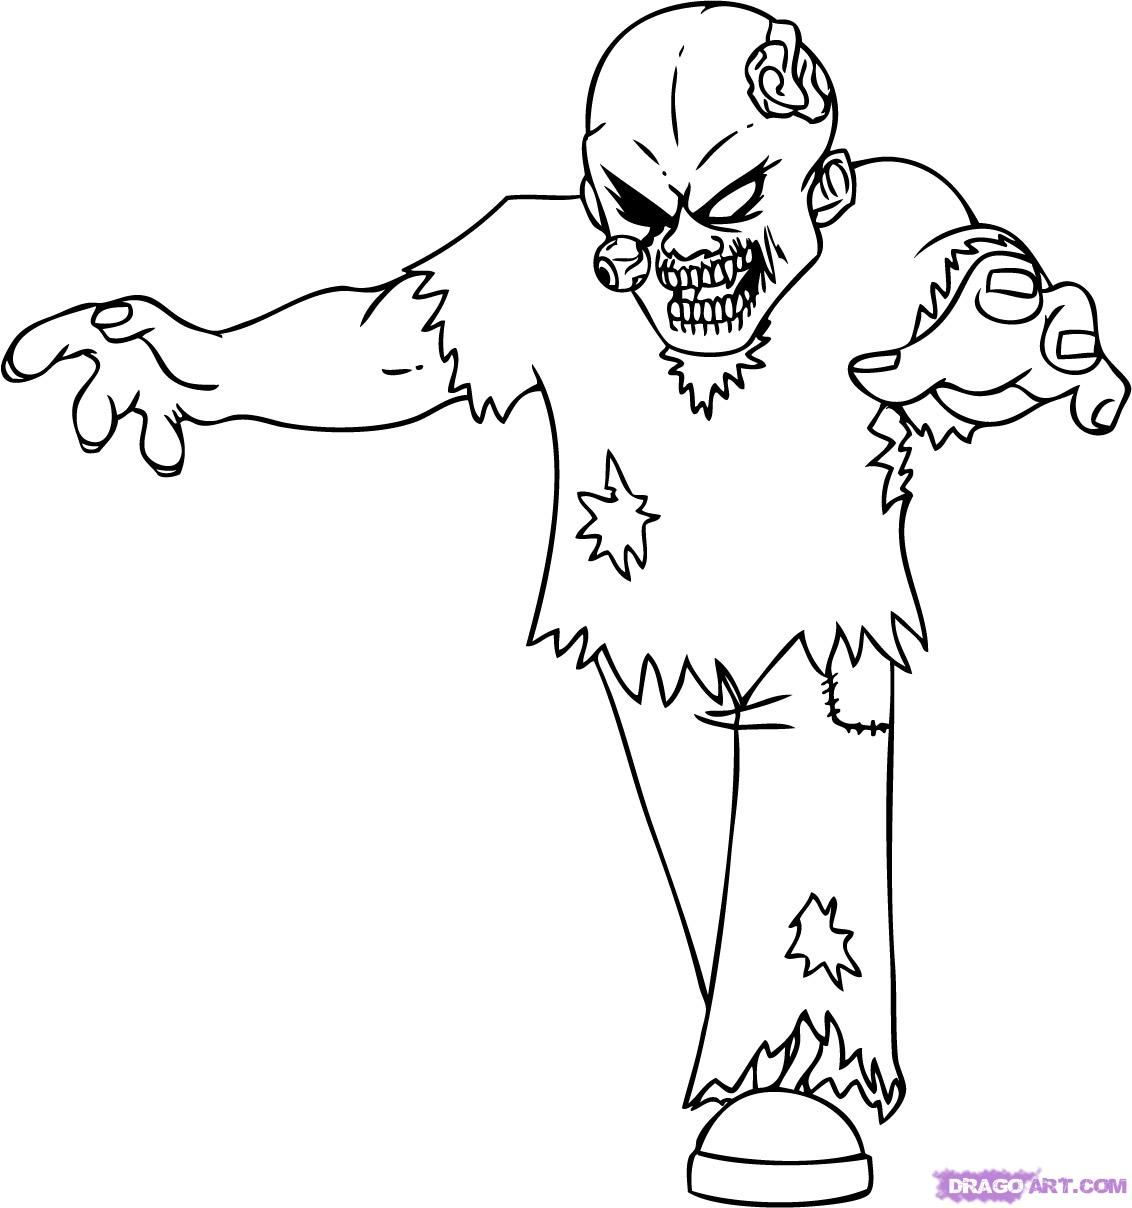 Zombies Color Sheets Experienced Zombie Image 3 Experienced Zombie Image 4 Halloween Coloring Halloween Coloring Sheets Monster Coloring Pages